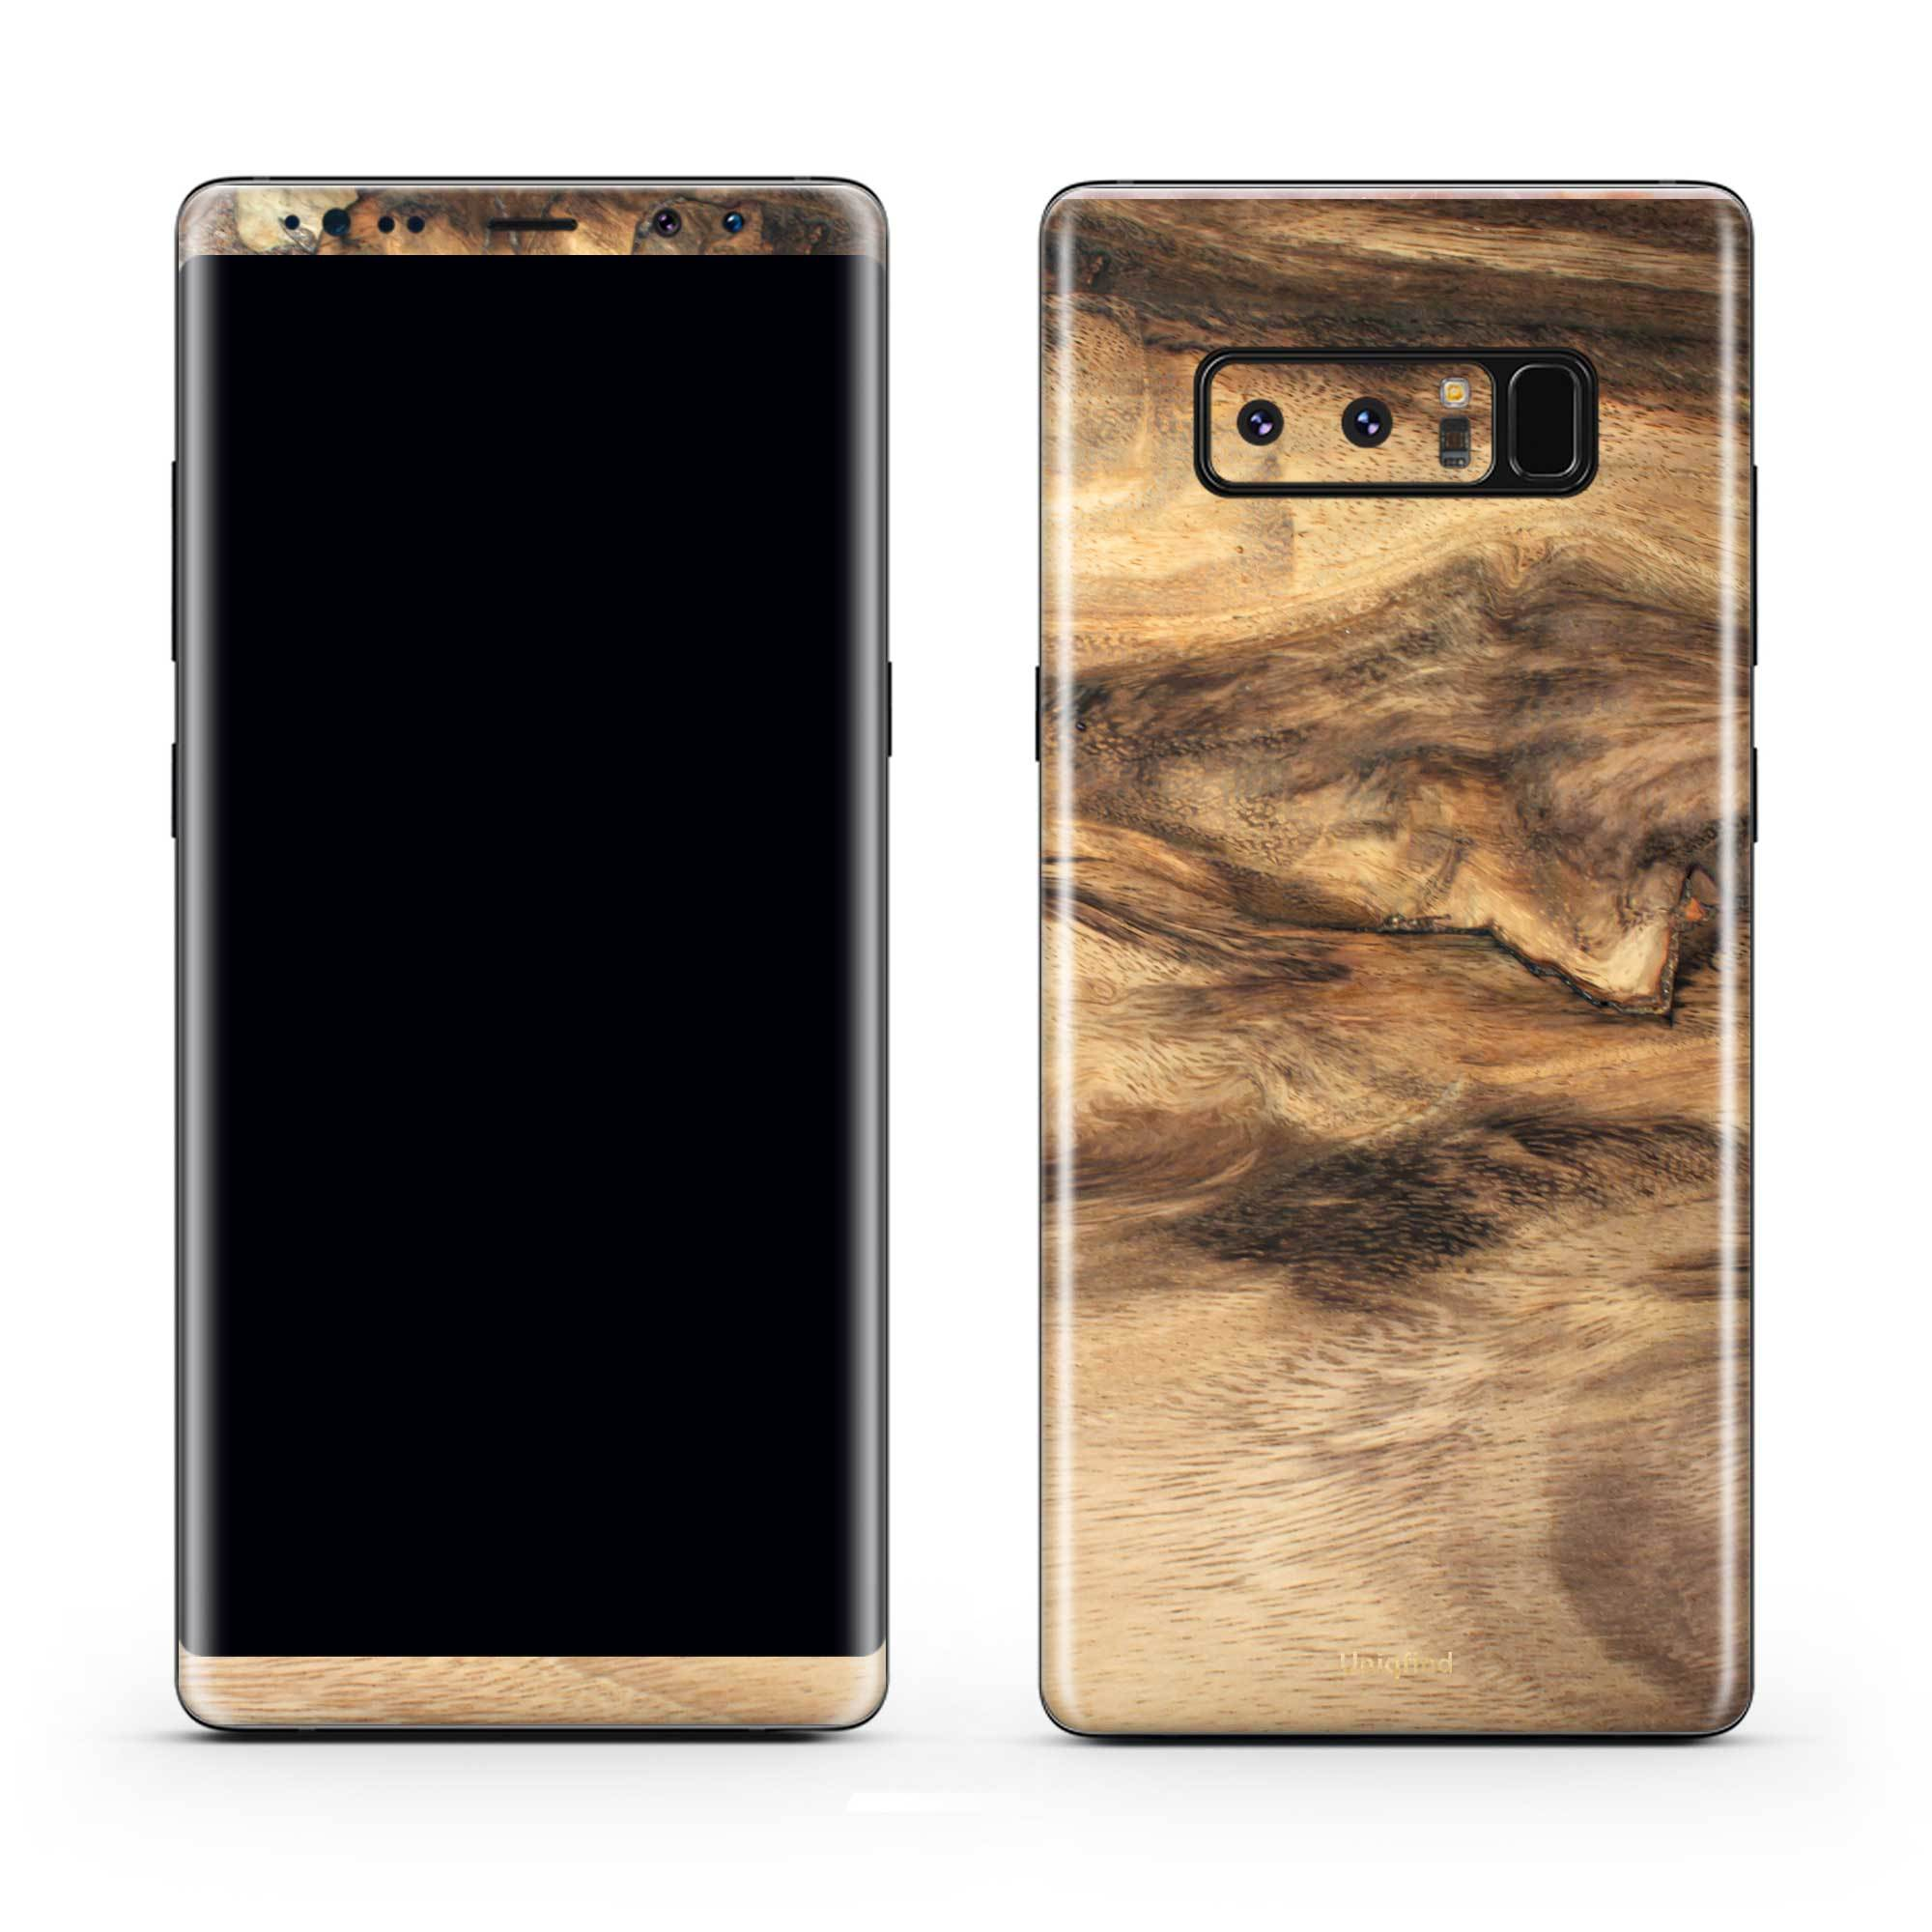 Wood Galaxy Note 8 Skin + Case